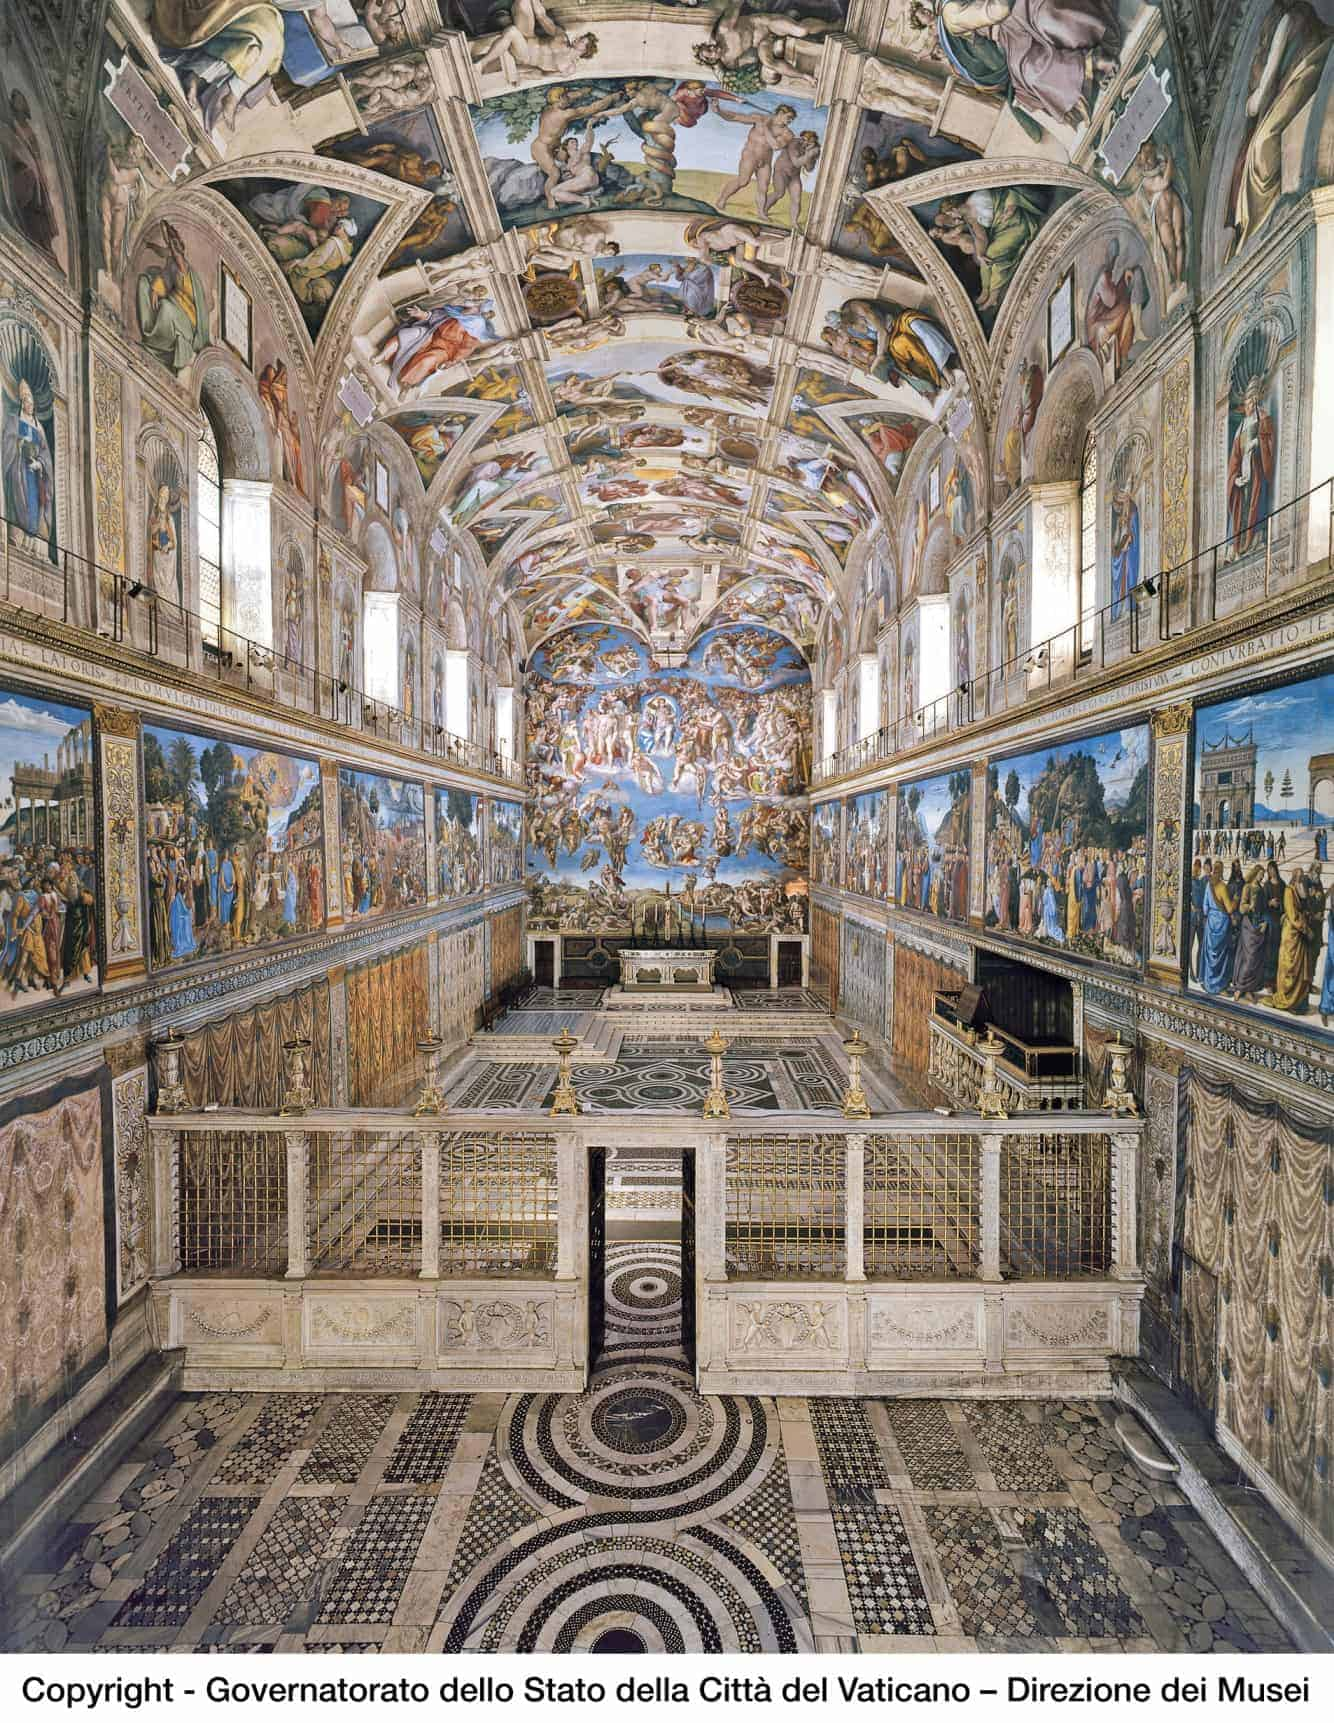 Osram lights up the Sistine Chapel